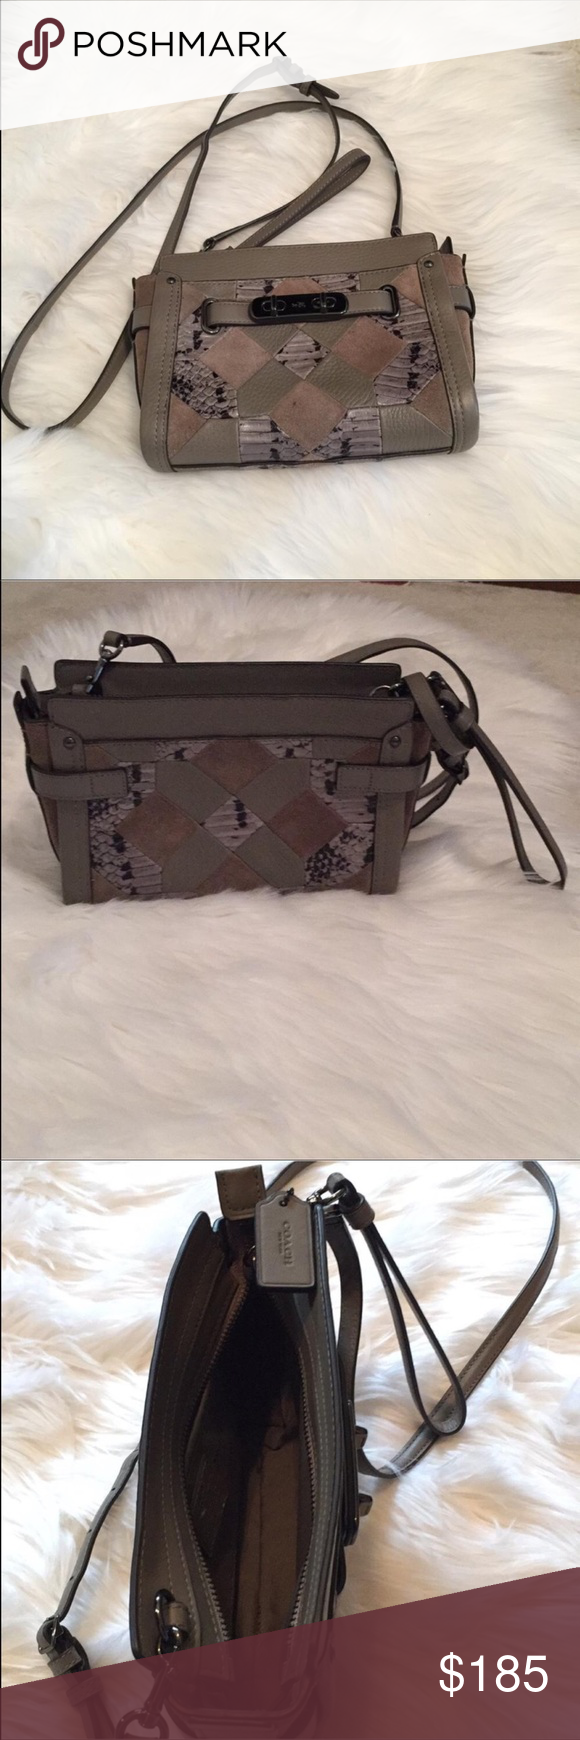 9a93c568a38 🎉NWOT COACH SWAGGER WRISTLET CROSS BODY BAG 🎉 🌺NWOT. NEVER USED Coach